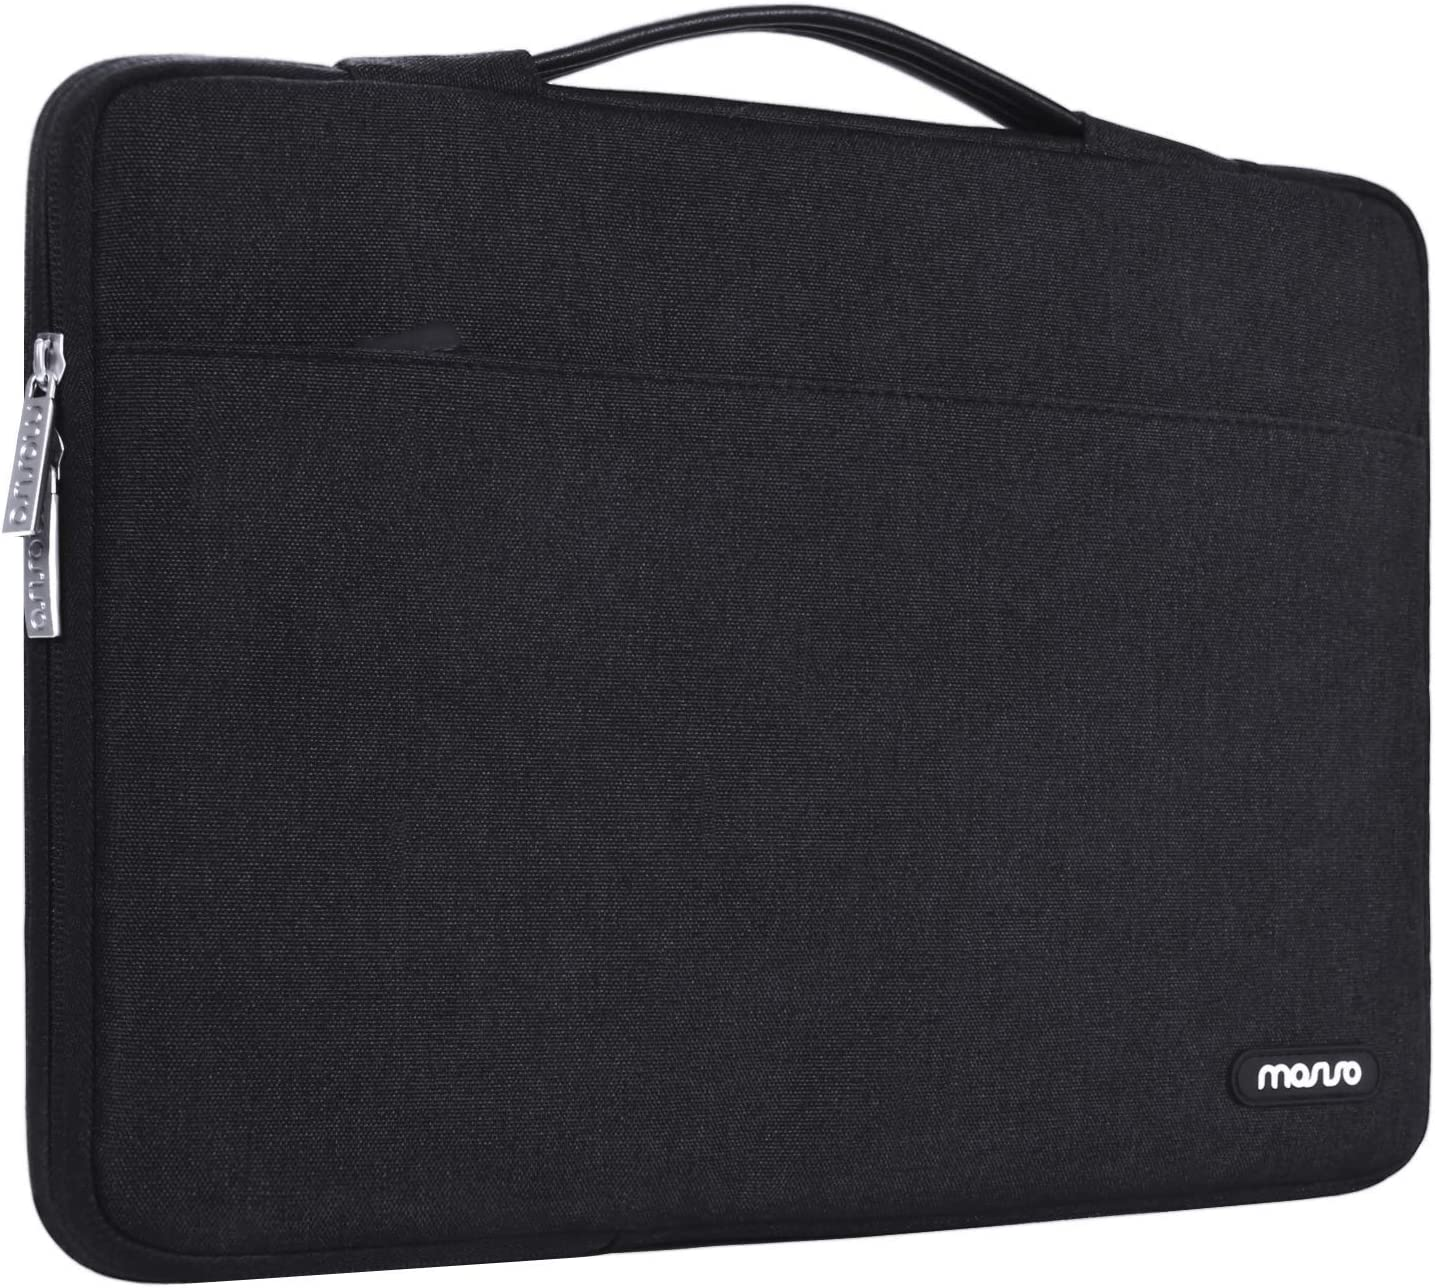 MOSISO Laptop Sleeve 360 Protective Case Bag Compatible with 2018-2020 MacBook Air 13 inch A2179 A1932, 13 inch MacBook Pro A2289 A2159 A1989 A1706 A1708, Polyester Briefcase with Trolley Belt, Black